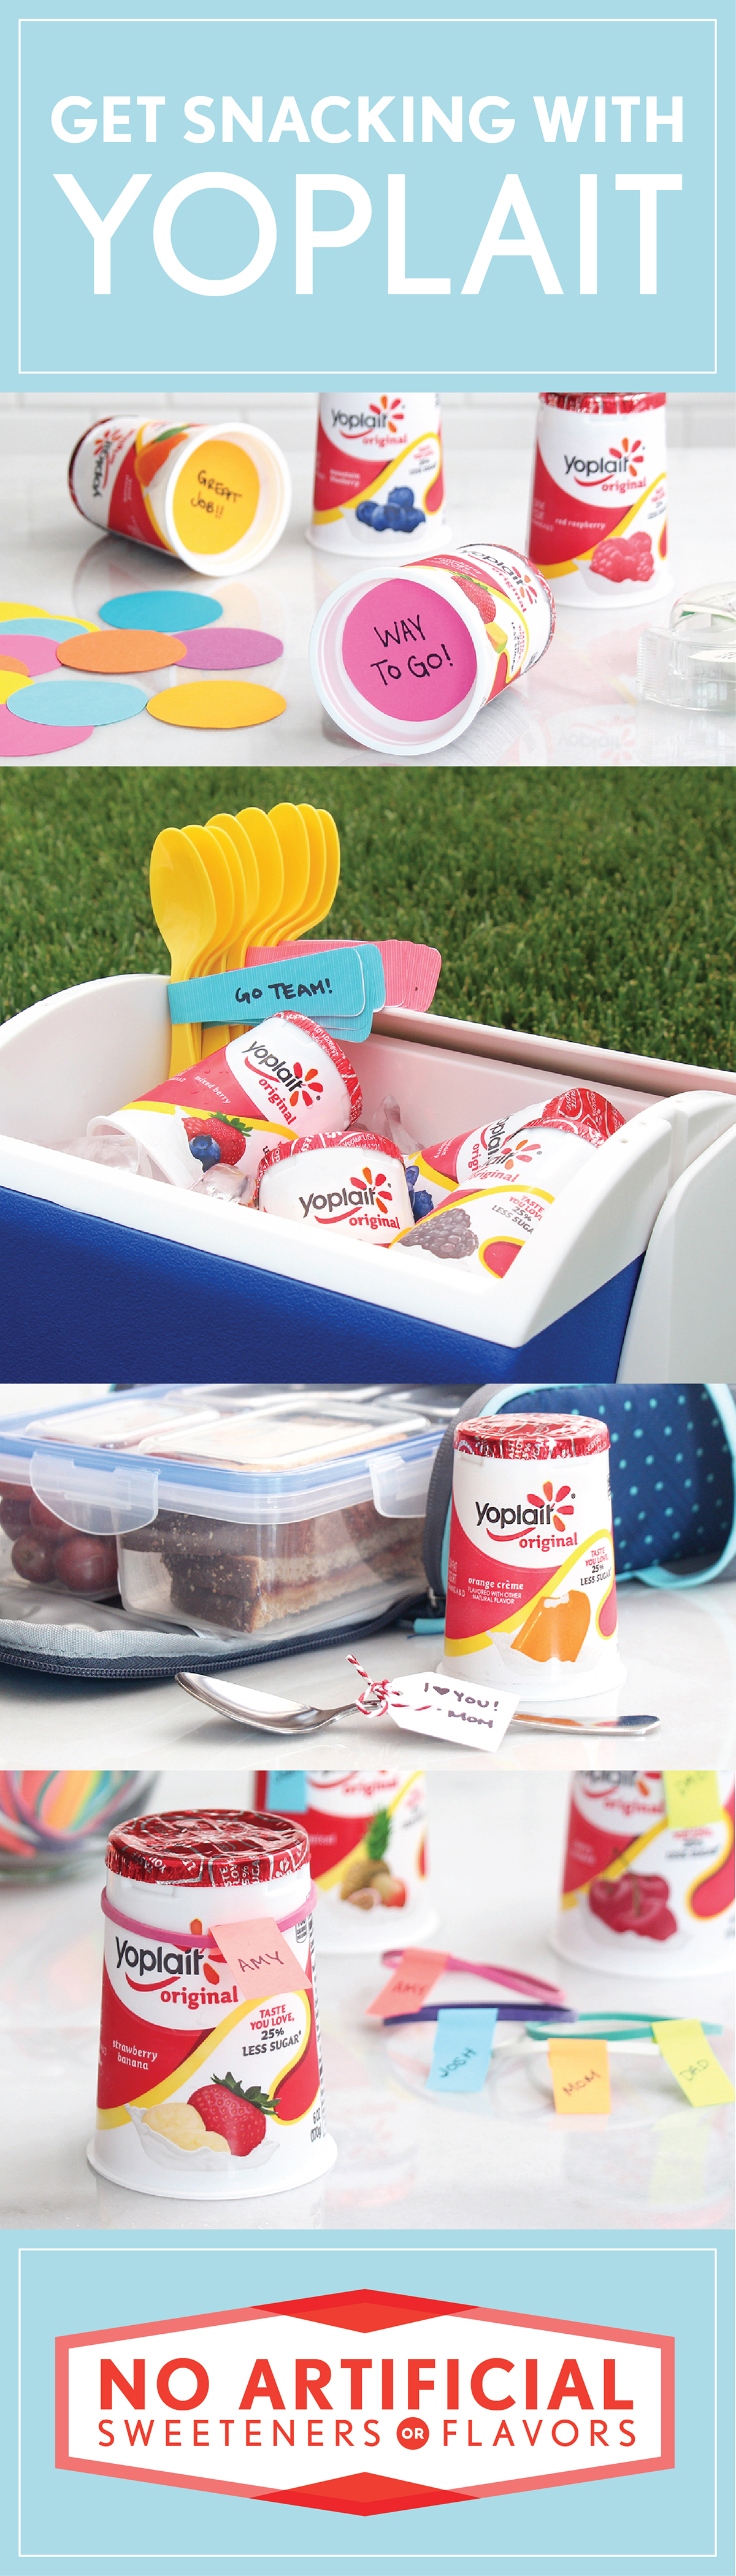 Feeling snacky? Yoplait has you covered this fall! Yoplait